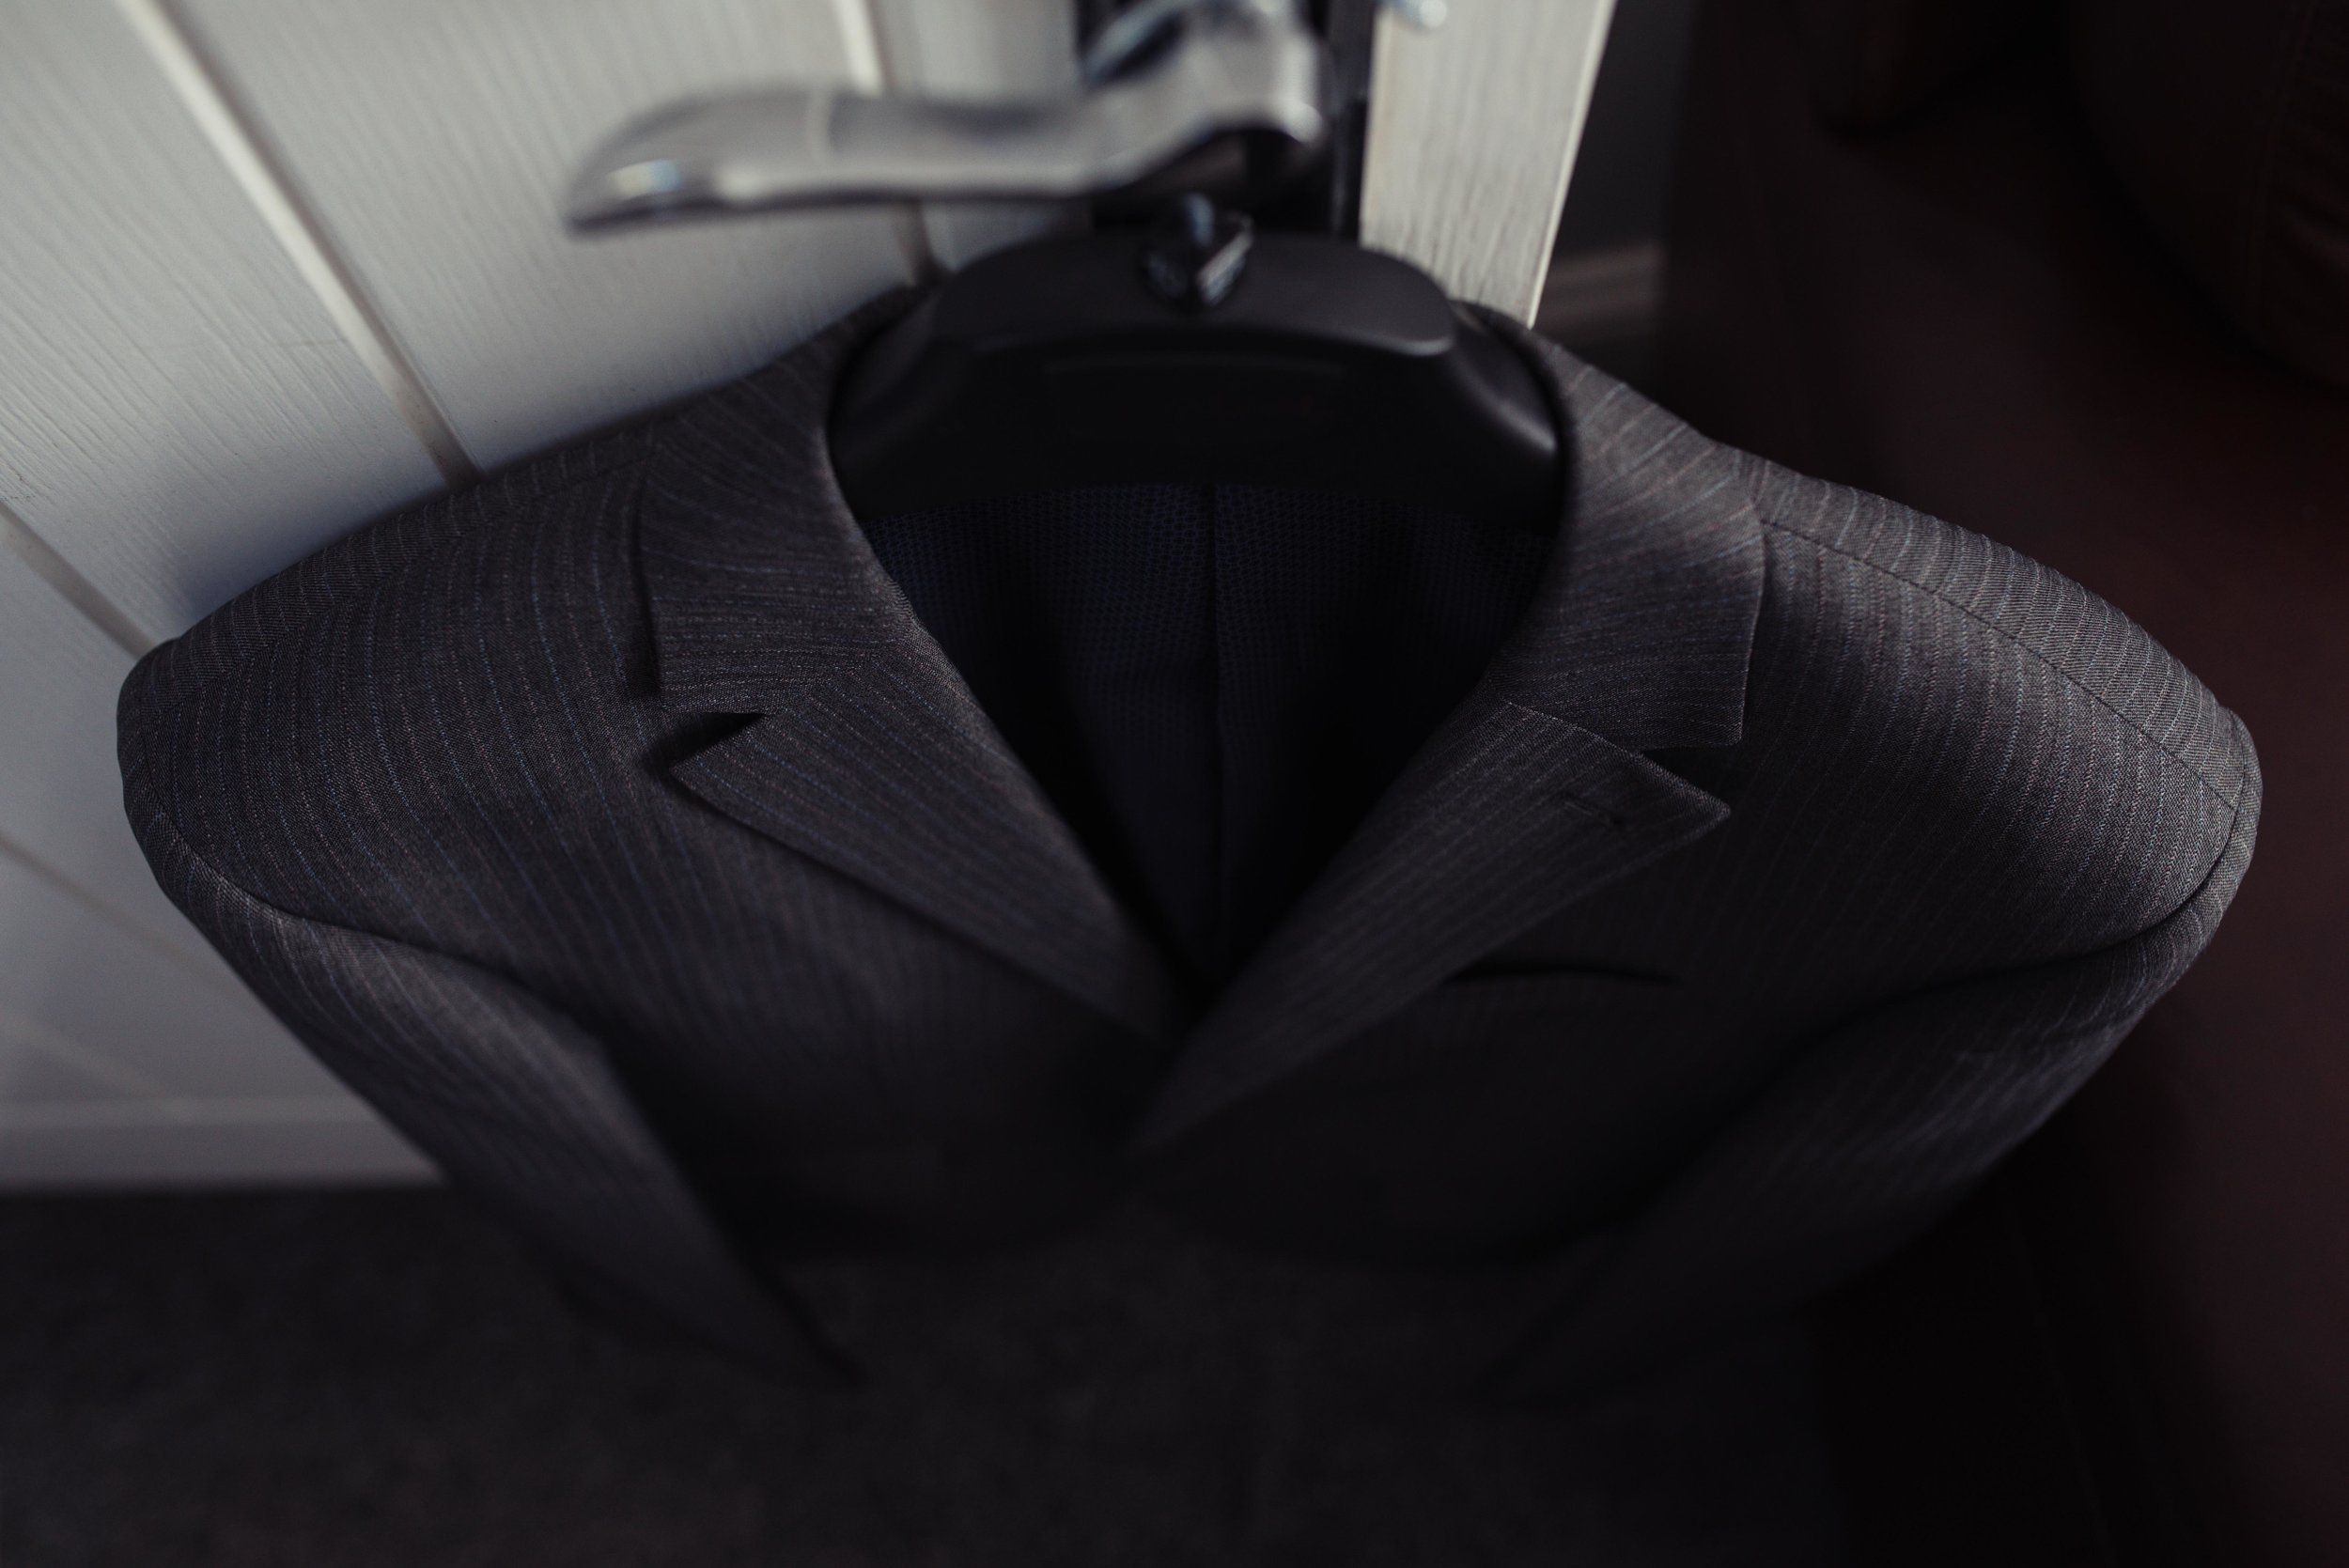 Grooms suit on a hanger hanging off the back of a door.